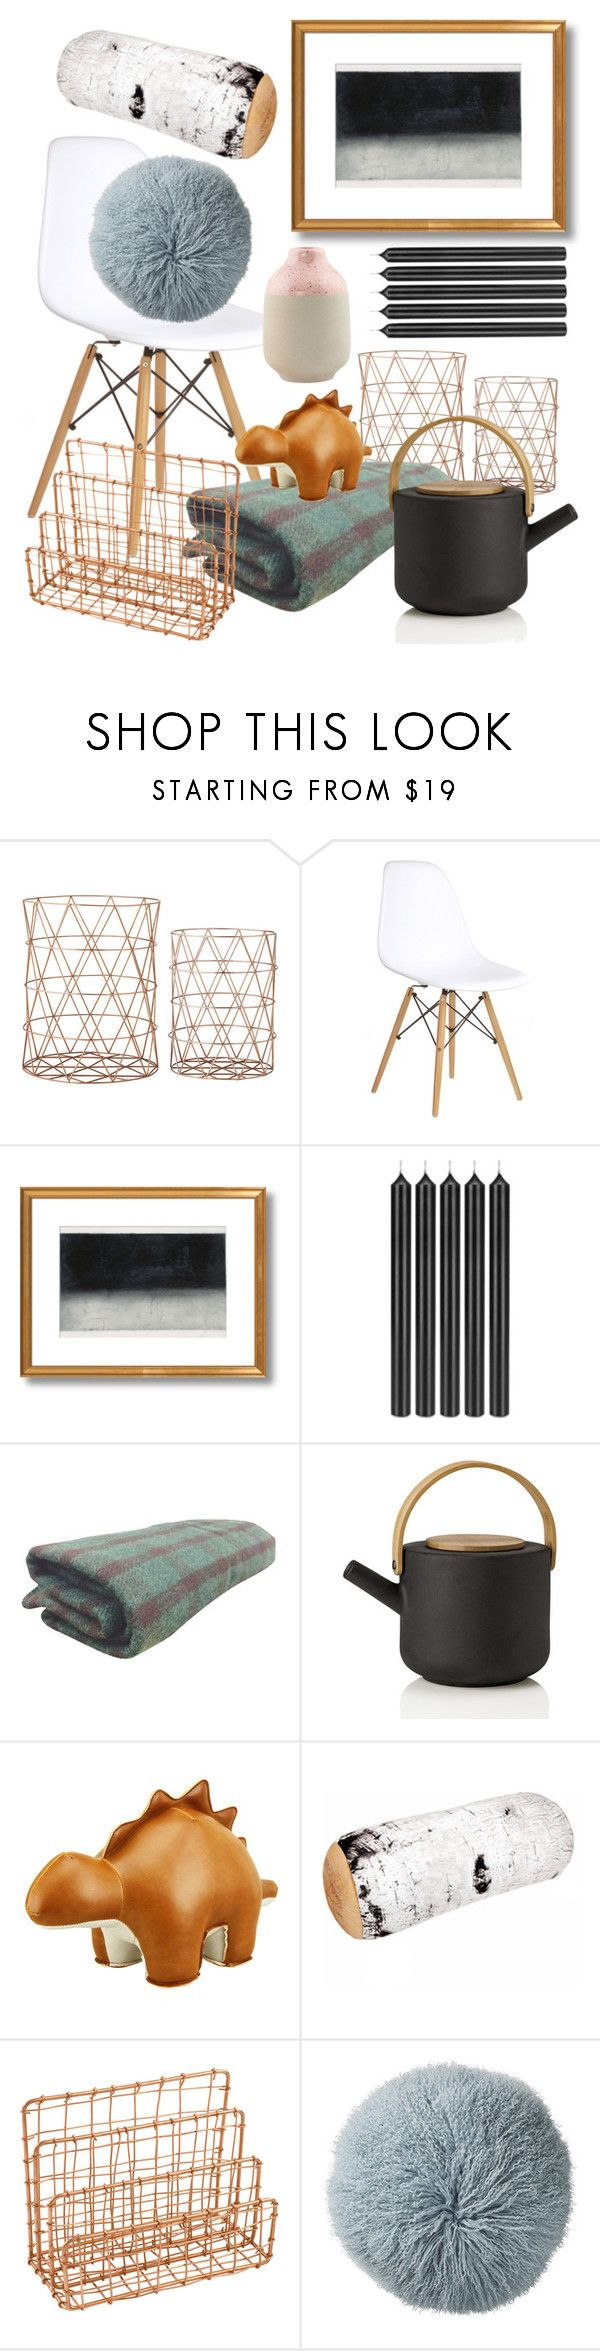 Grey By Dodo85 On Polyvore Featuring Interior, Interiors, Interior Design,  Home, Home